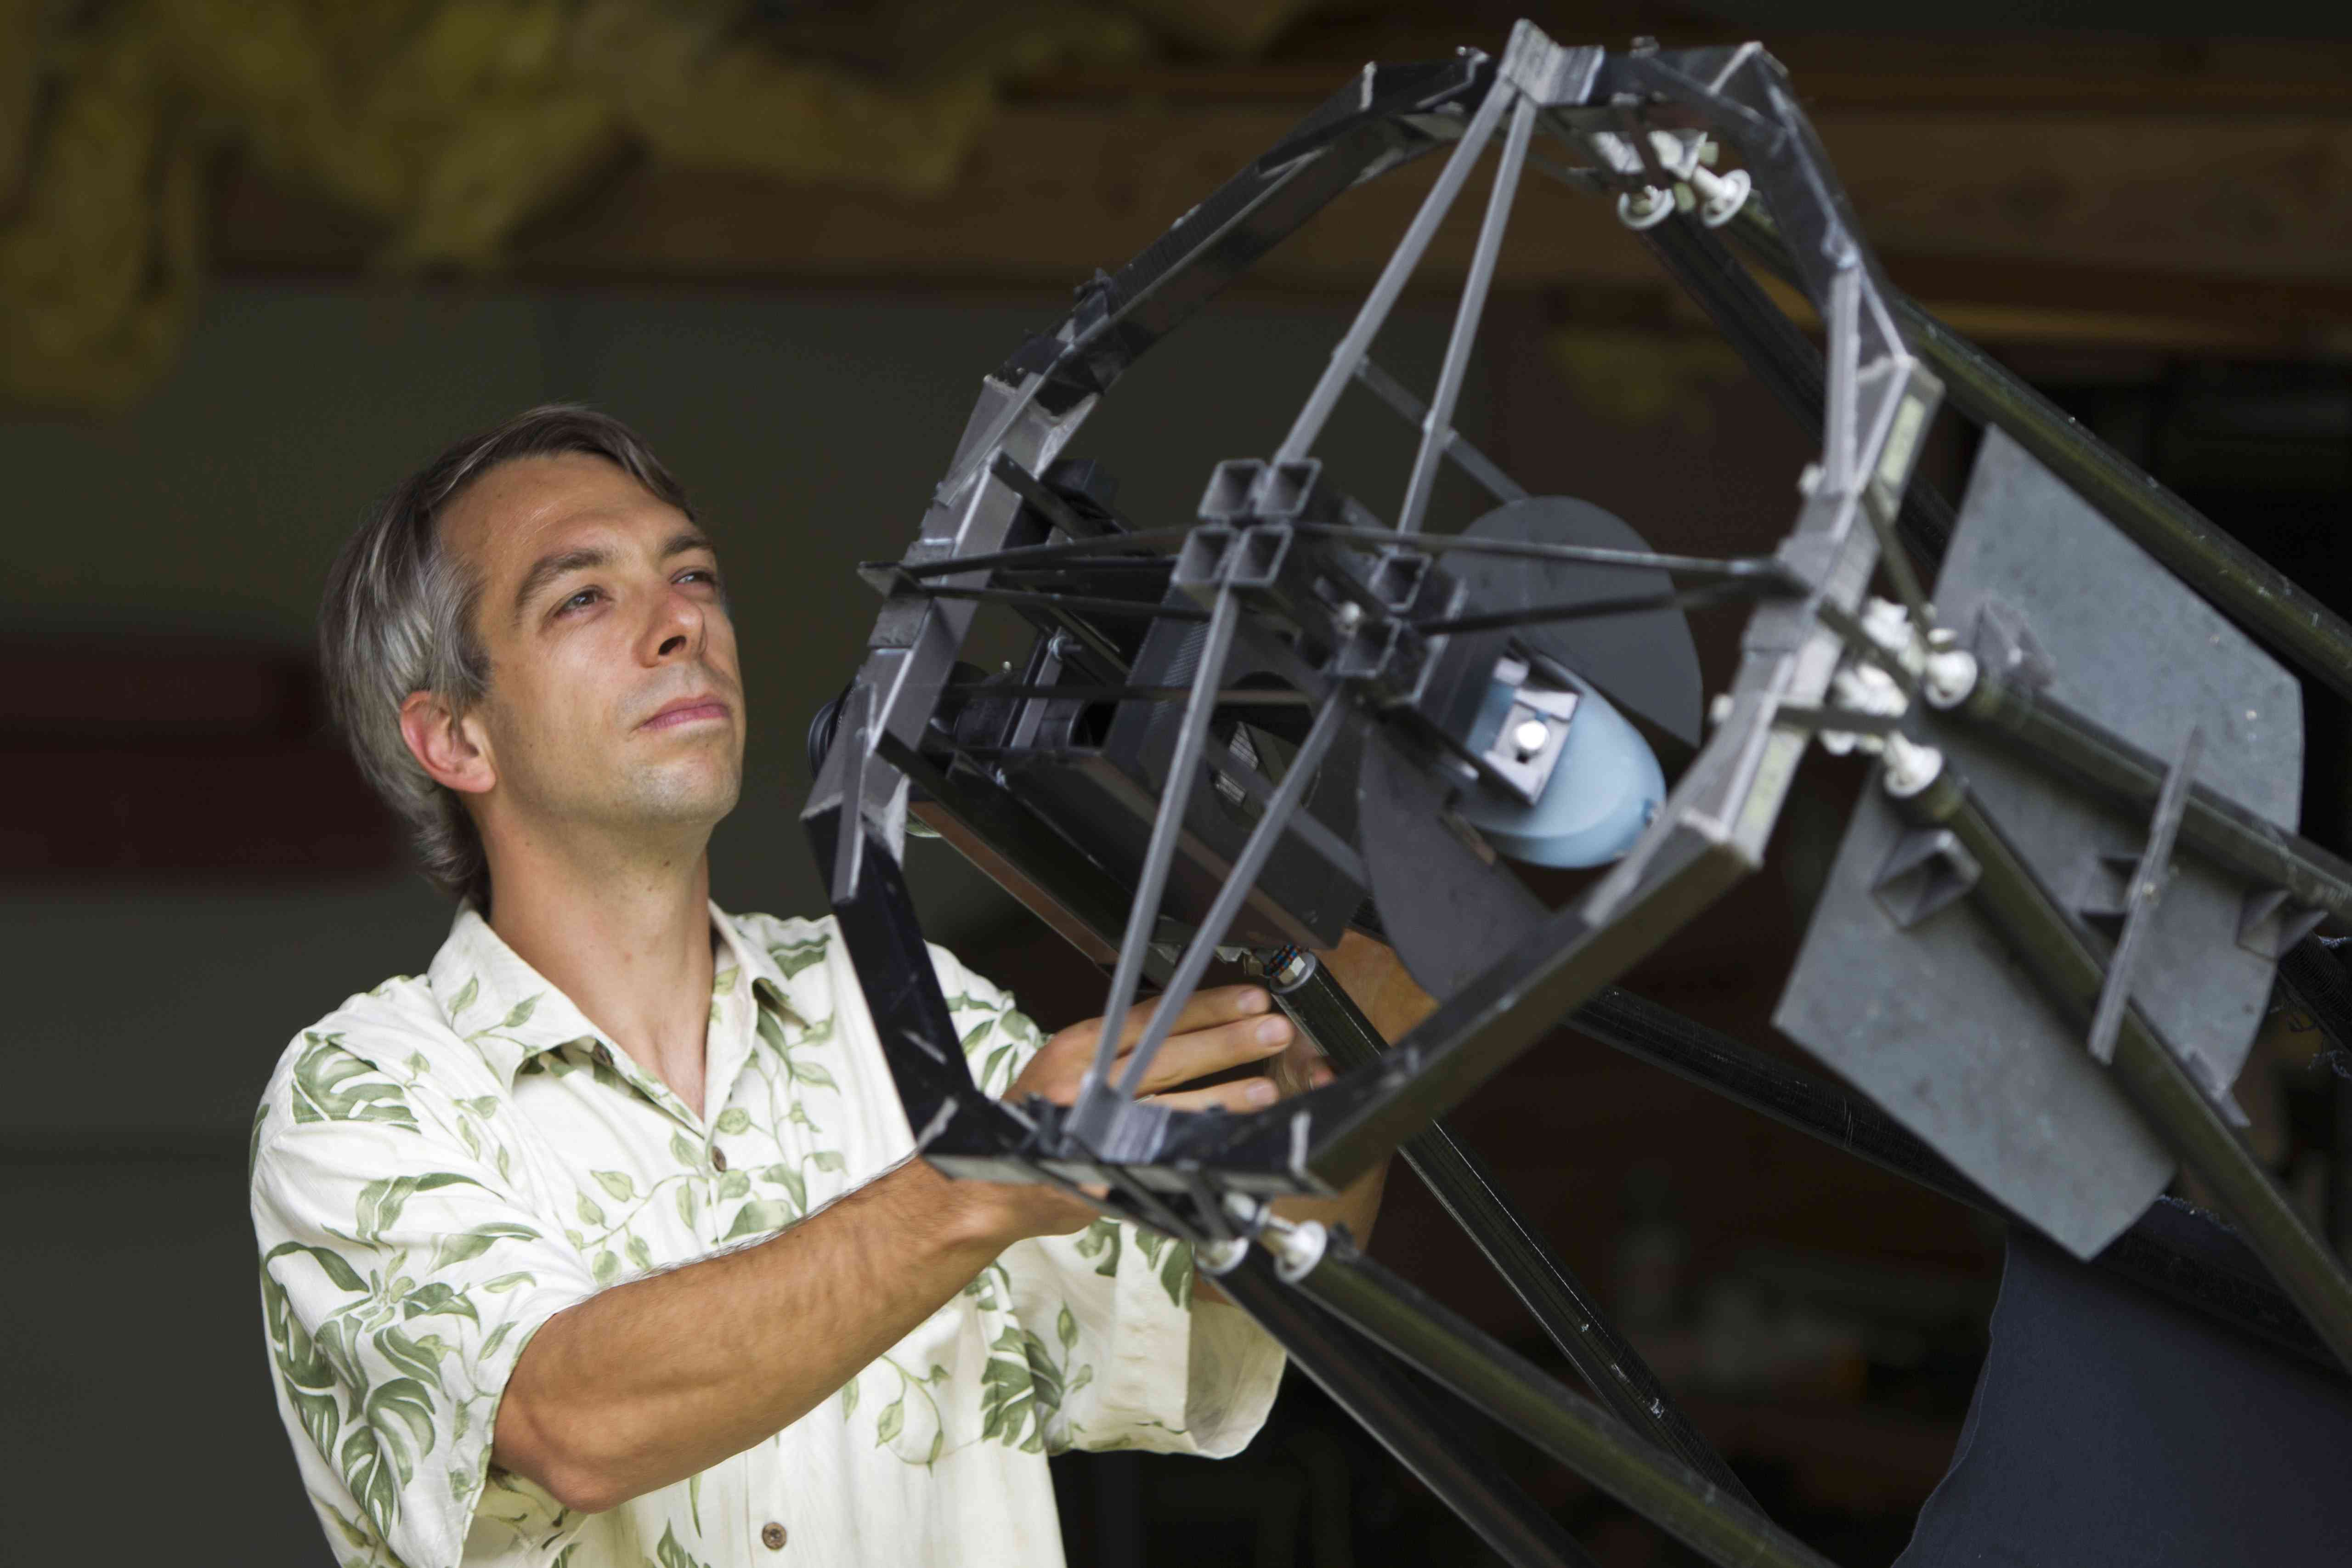 Astronomer and 2012 MacArthur Fellow Olivier Guyon works on a home-made telescope in his garage in Hilo. Photo by Marco Garcia/Getty Images for Home Front Communications.